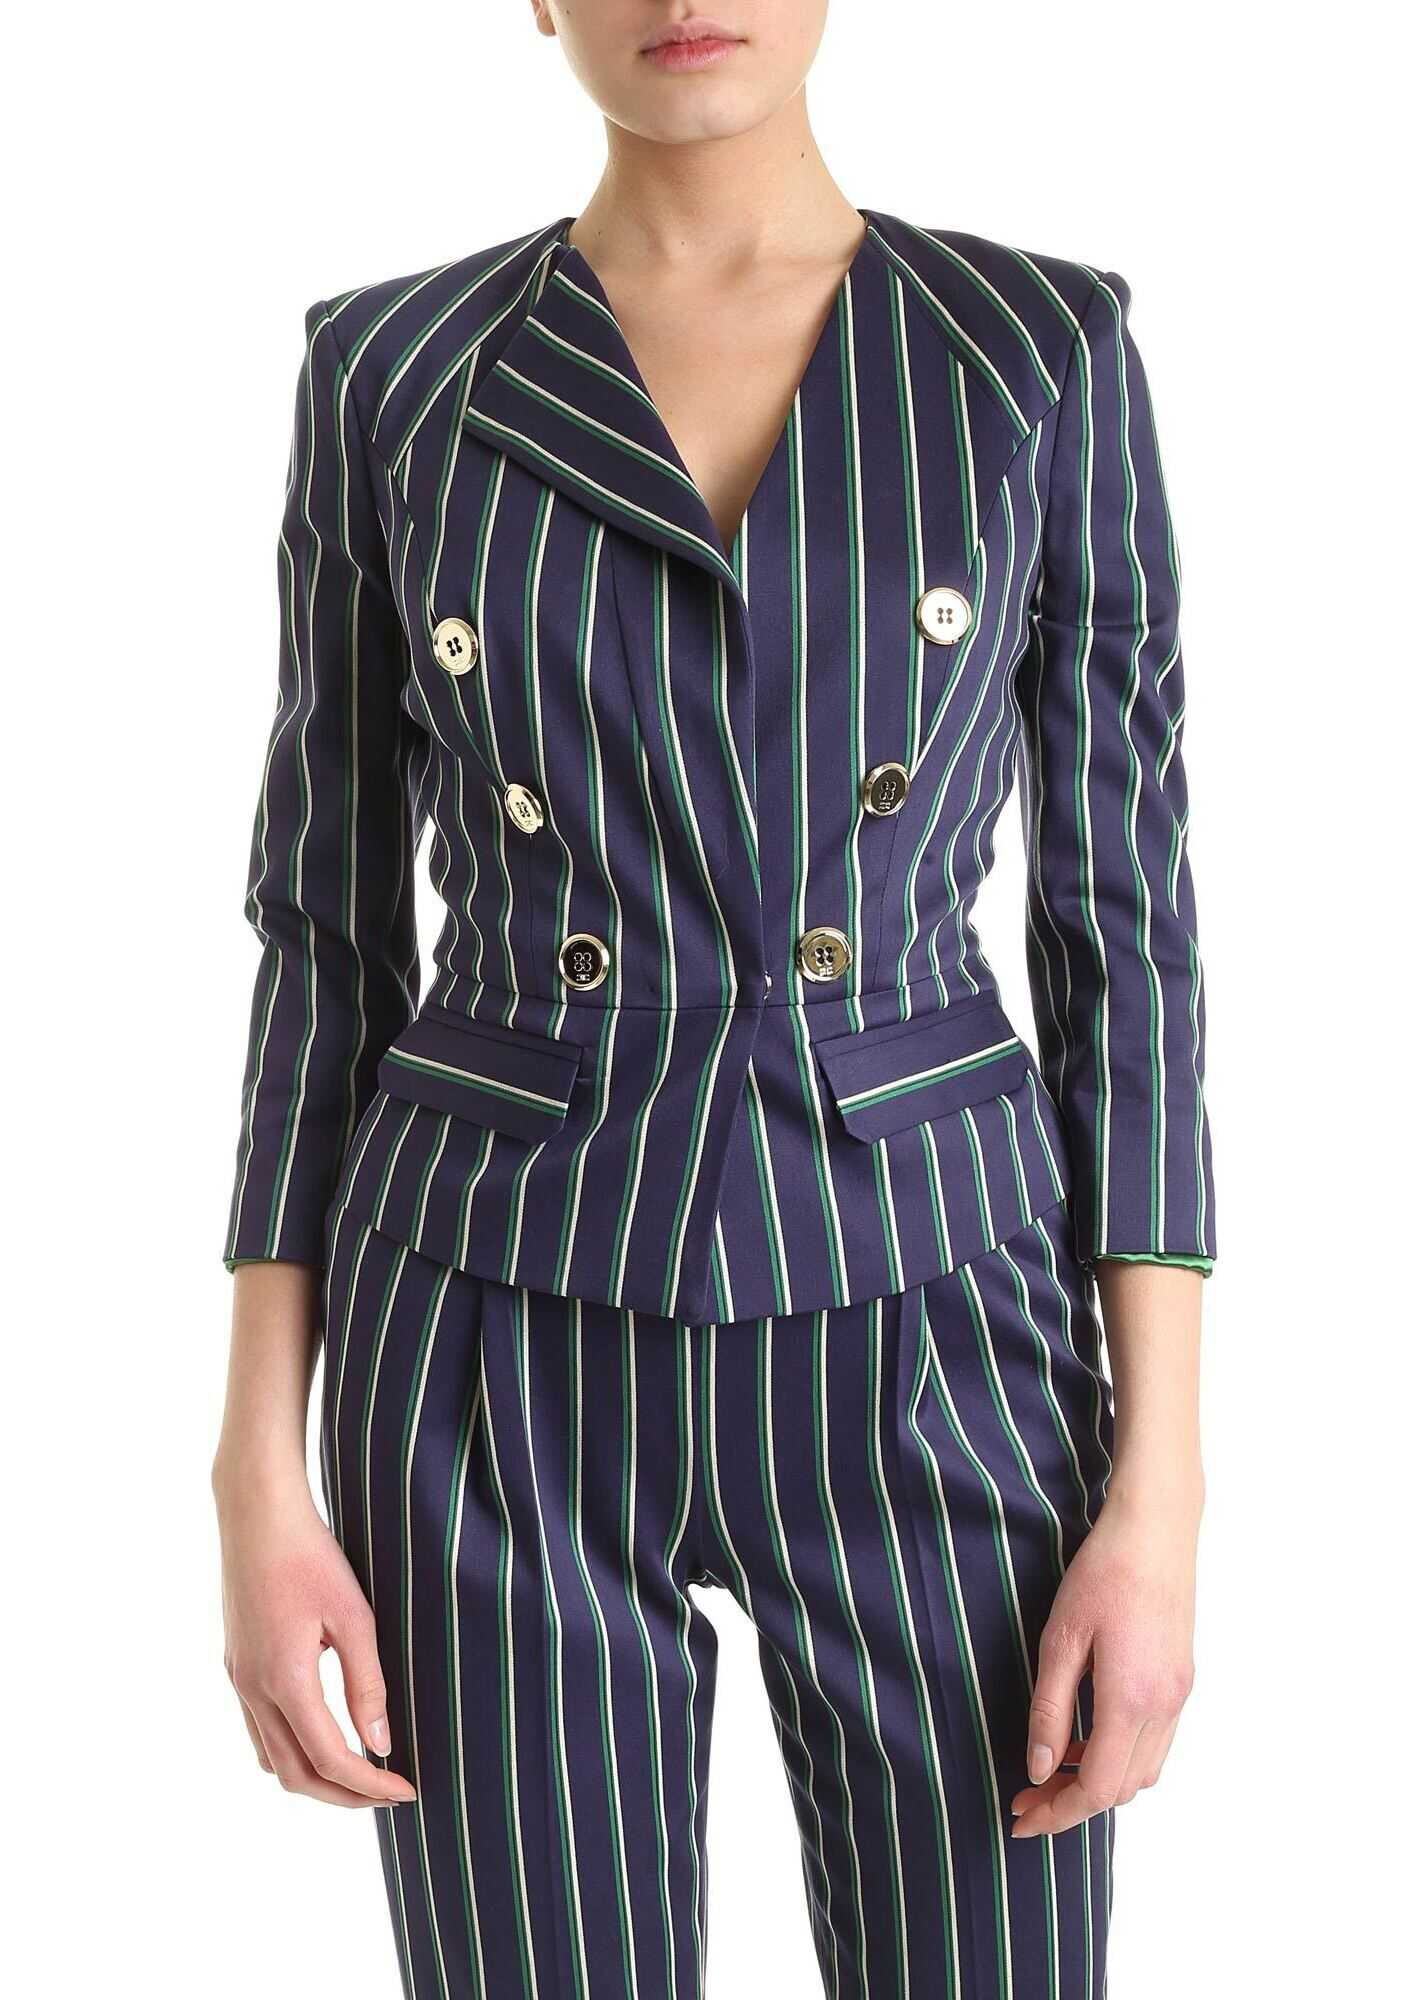 Elisabetta Franchi Striped Jacket In Green Blue And White Blue